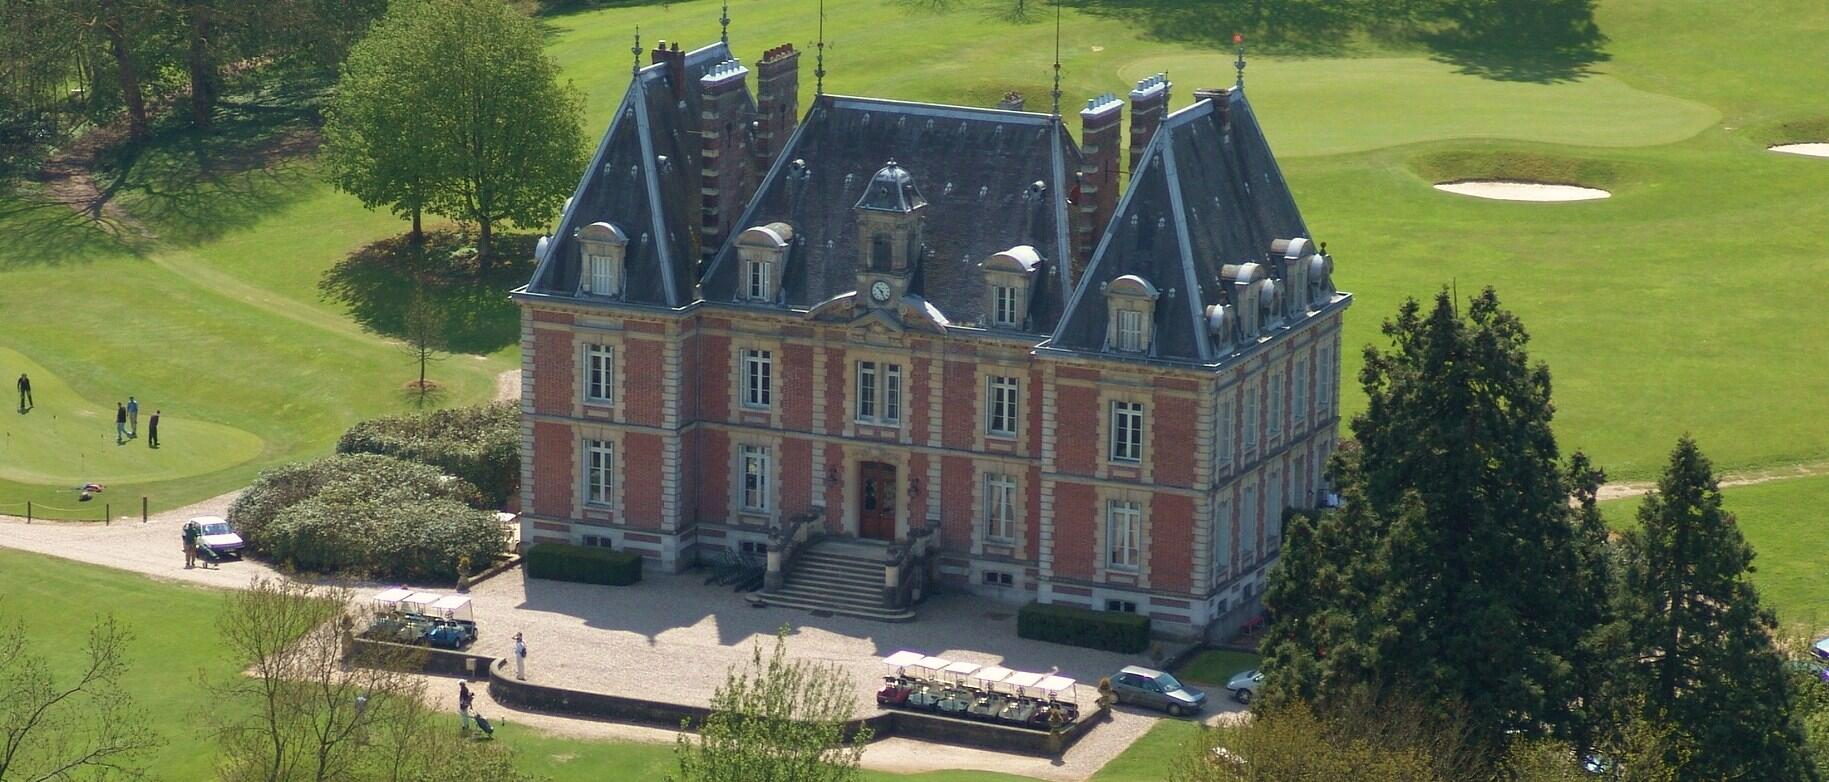 Golf Hotel de Saint-Saëns in Normandy